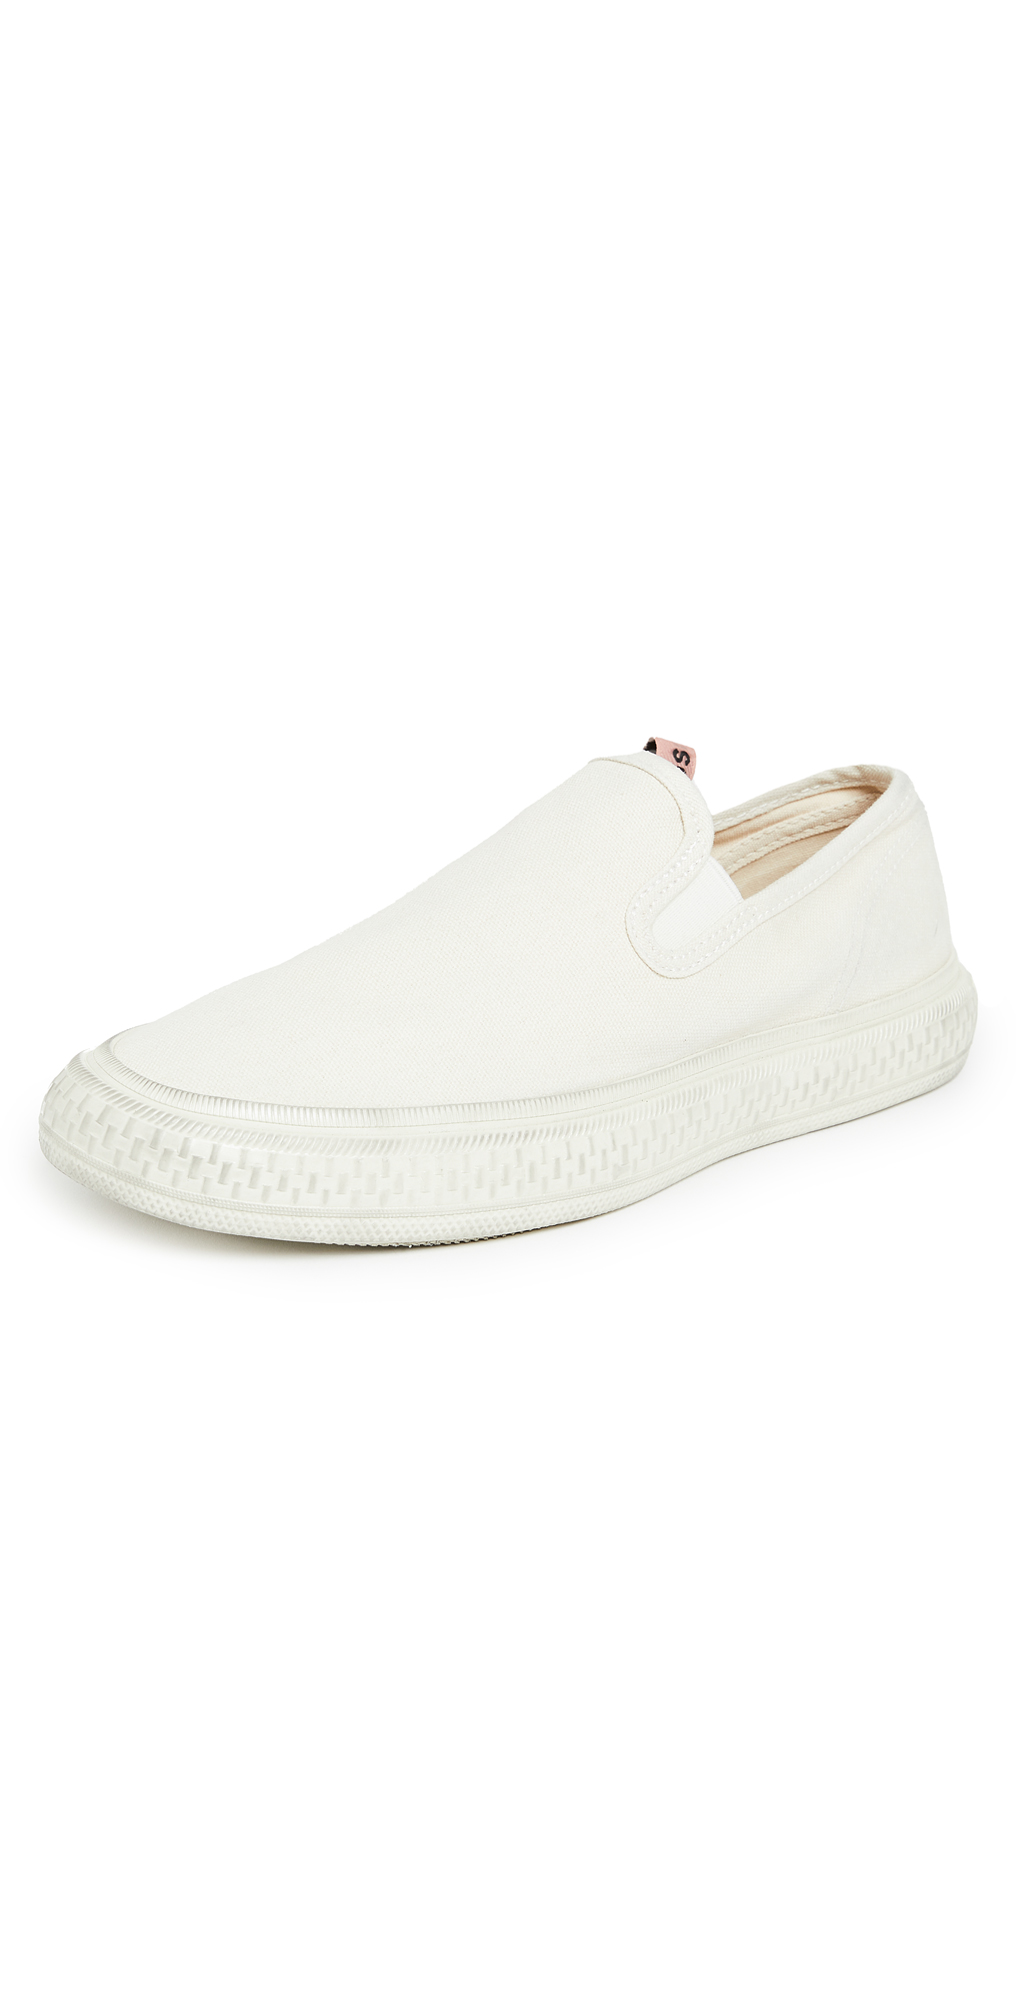 Acne Studios Classic Slip On Sneakers